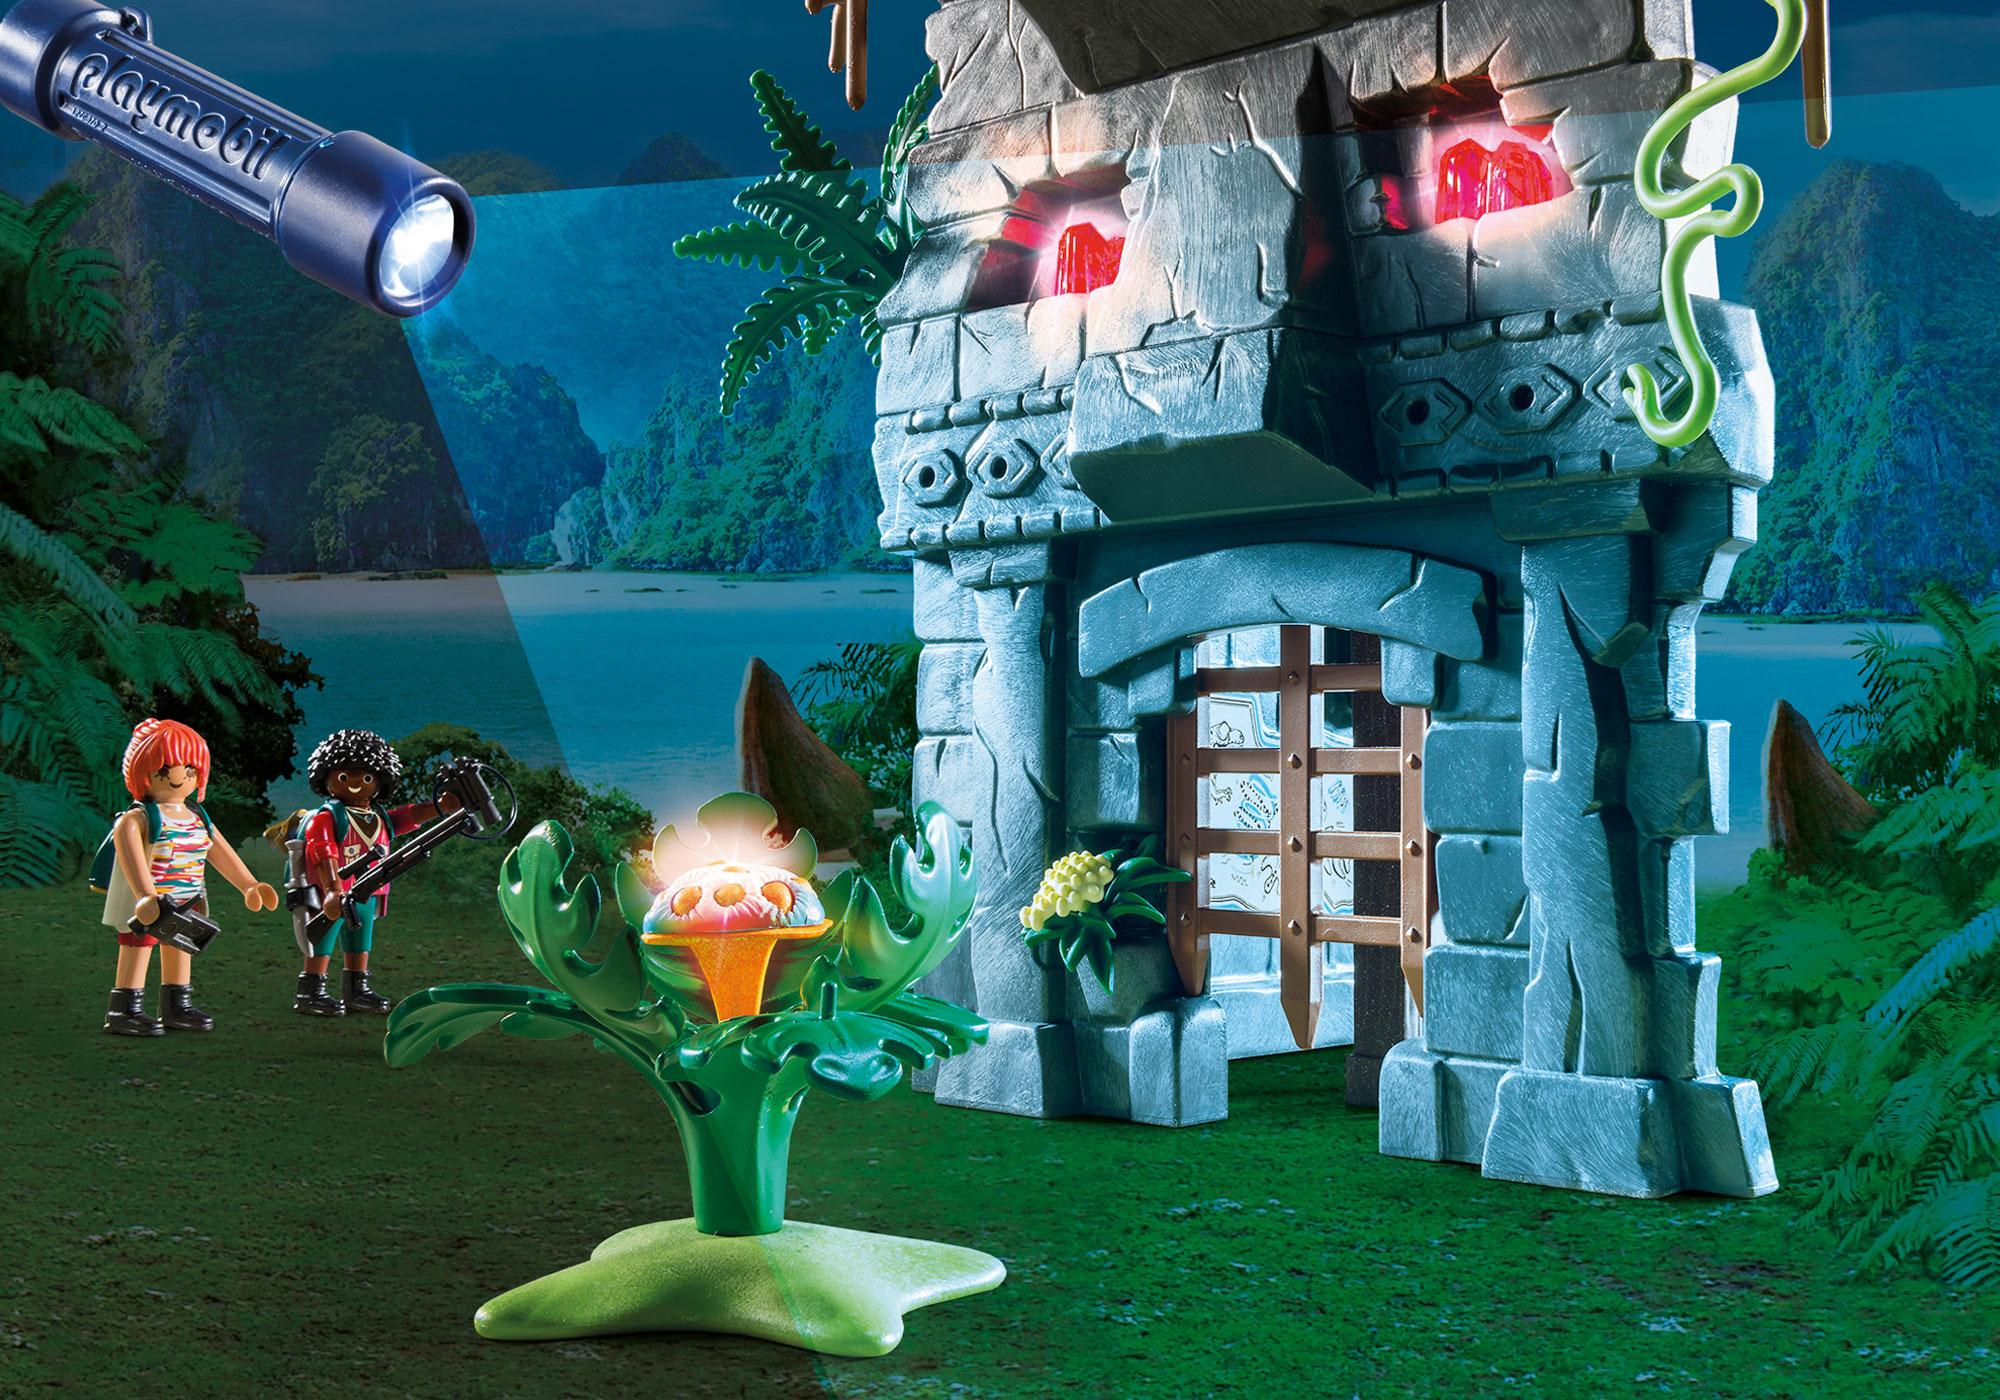 http://media.playmobil.com/i/playmobil/9429_product_extra1/Hidden Temple with T-Rex